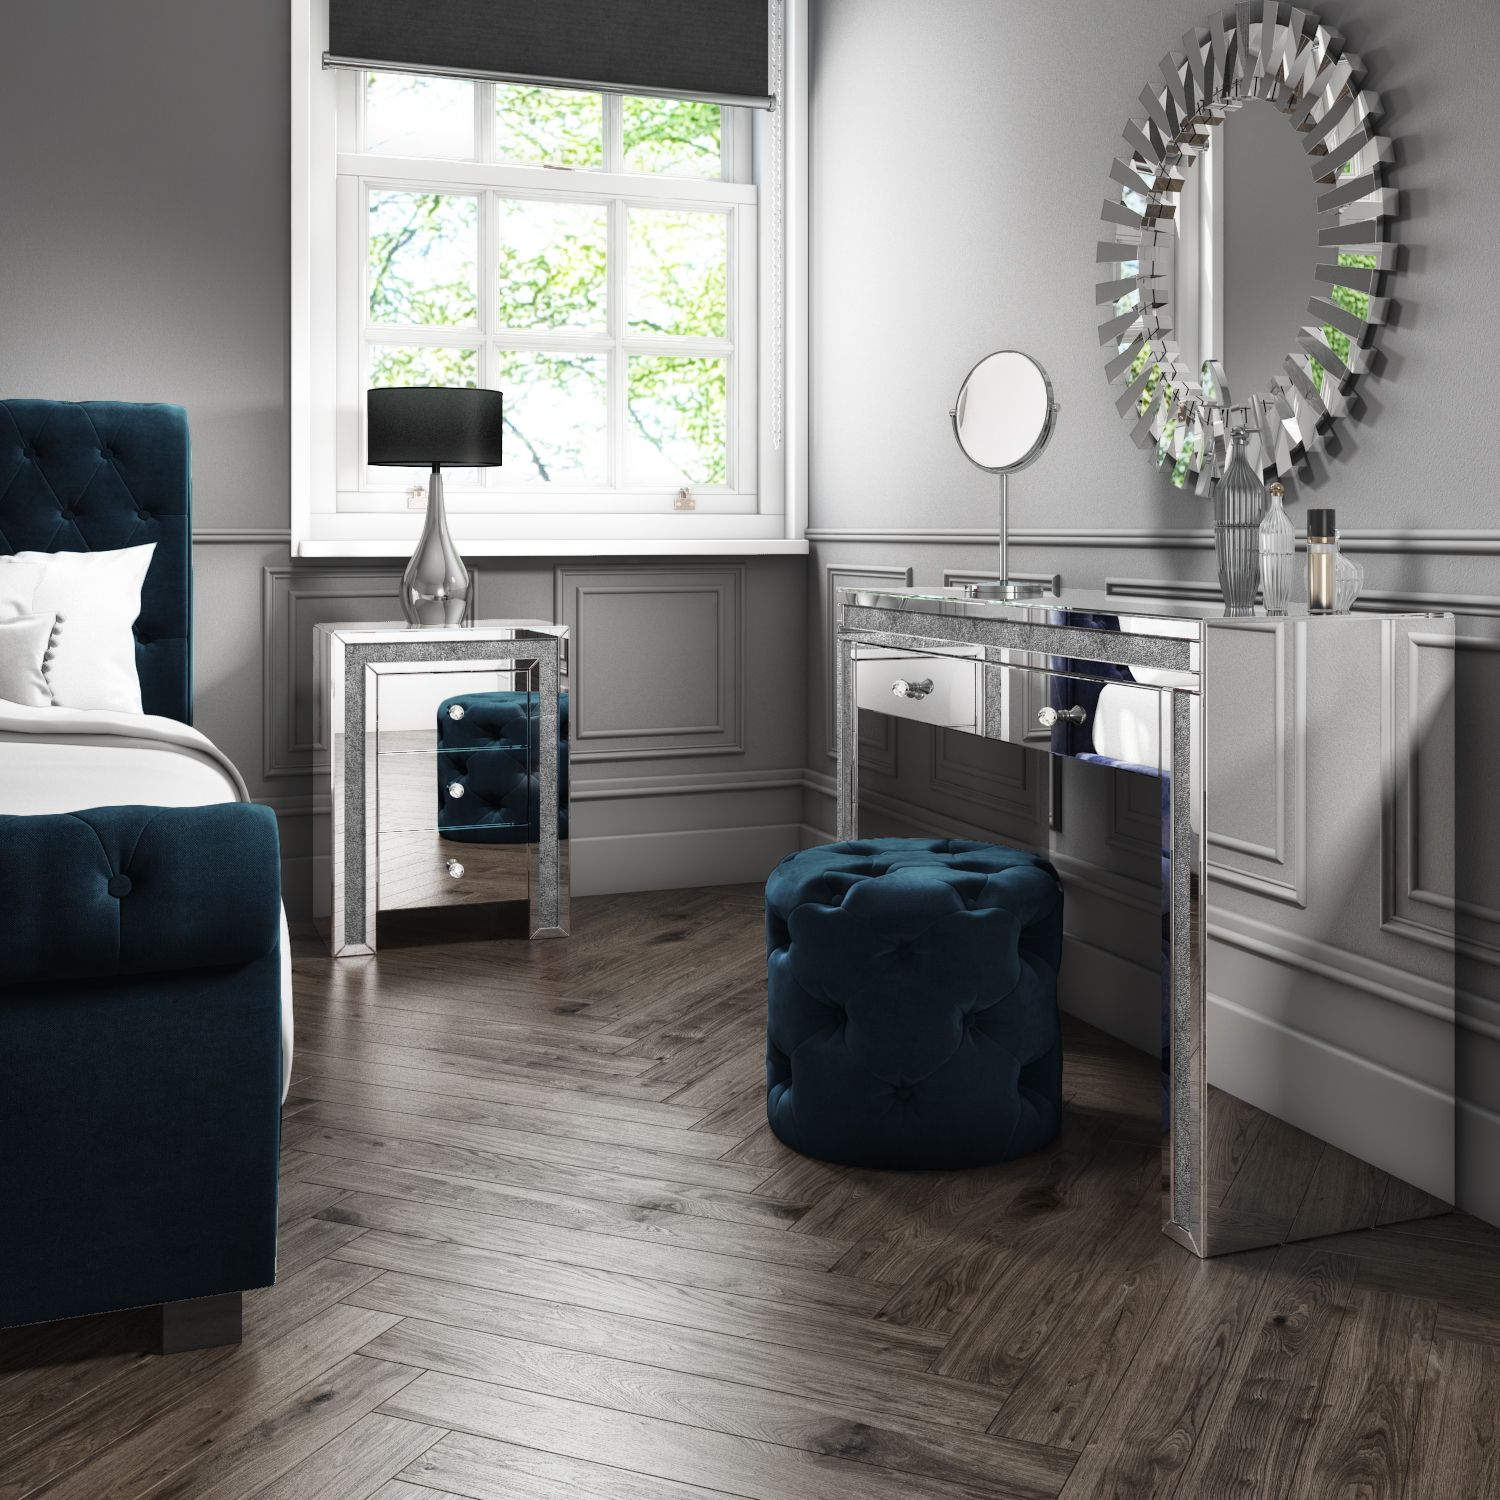 Mirrored Bedroom Furniture with Storage in Silver and